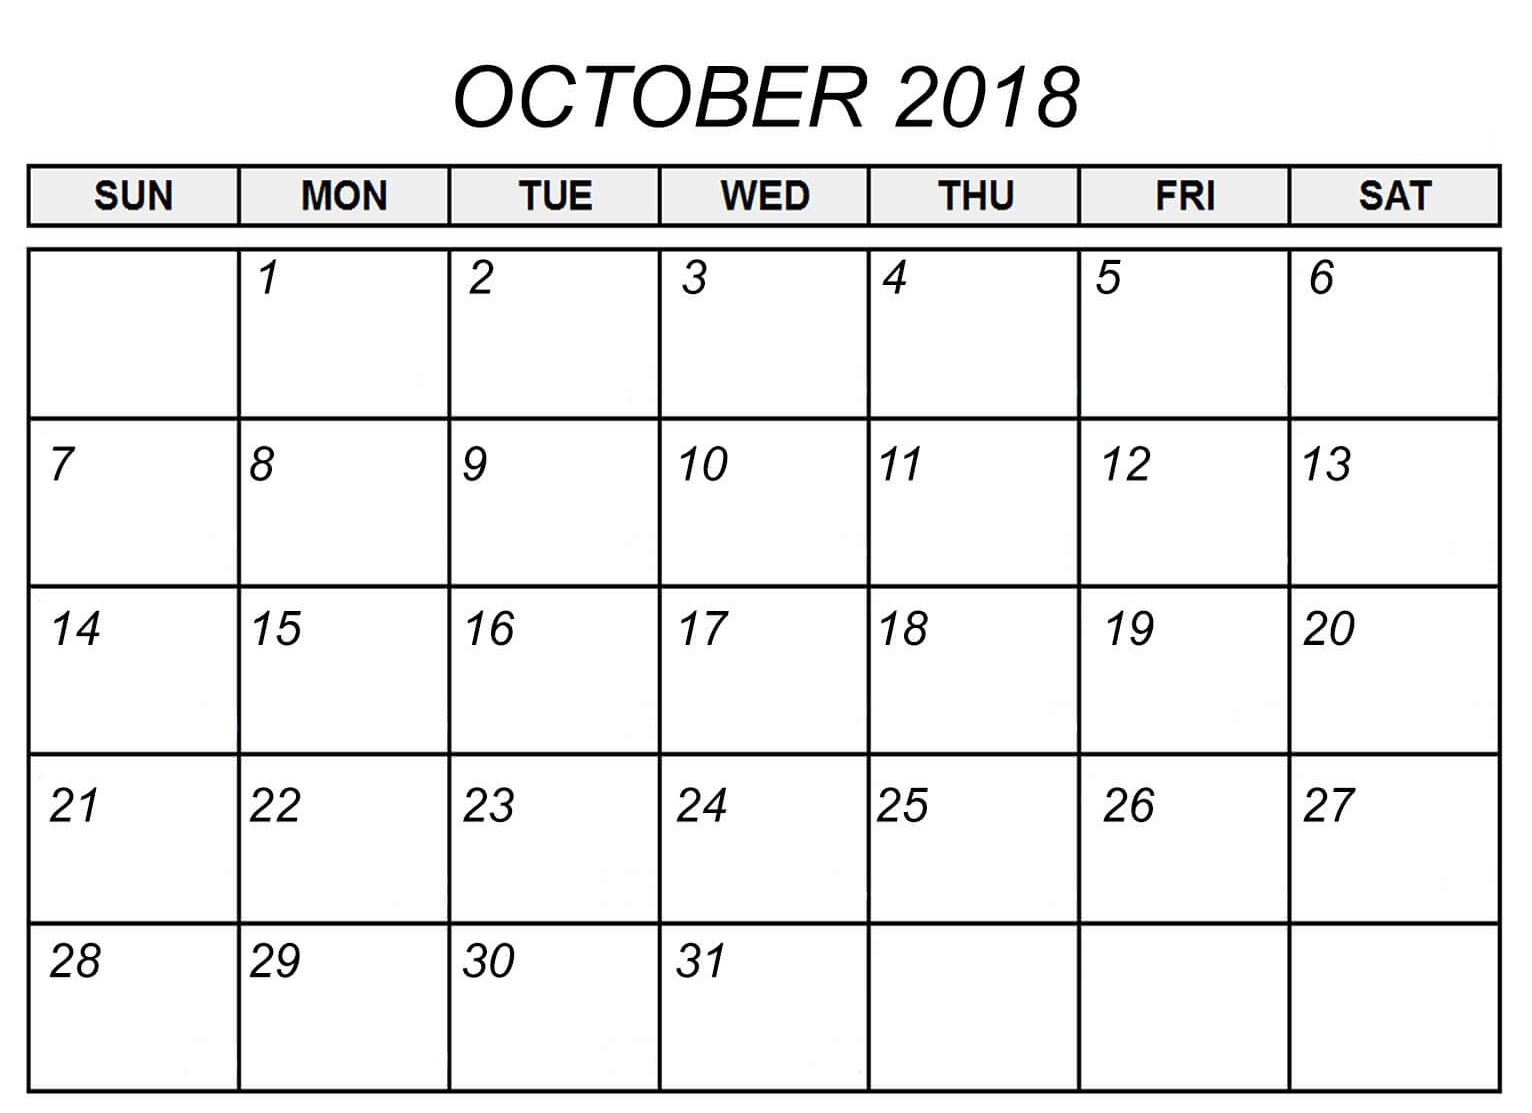 calendar october 2018 printable template paper worksheets calendar Calendar October 2018 Printables erdferdf